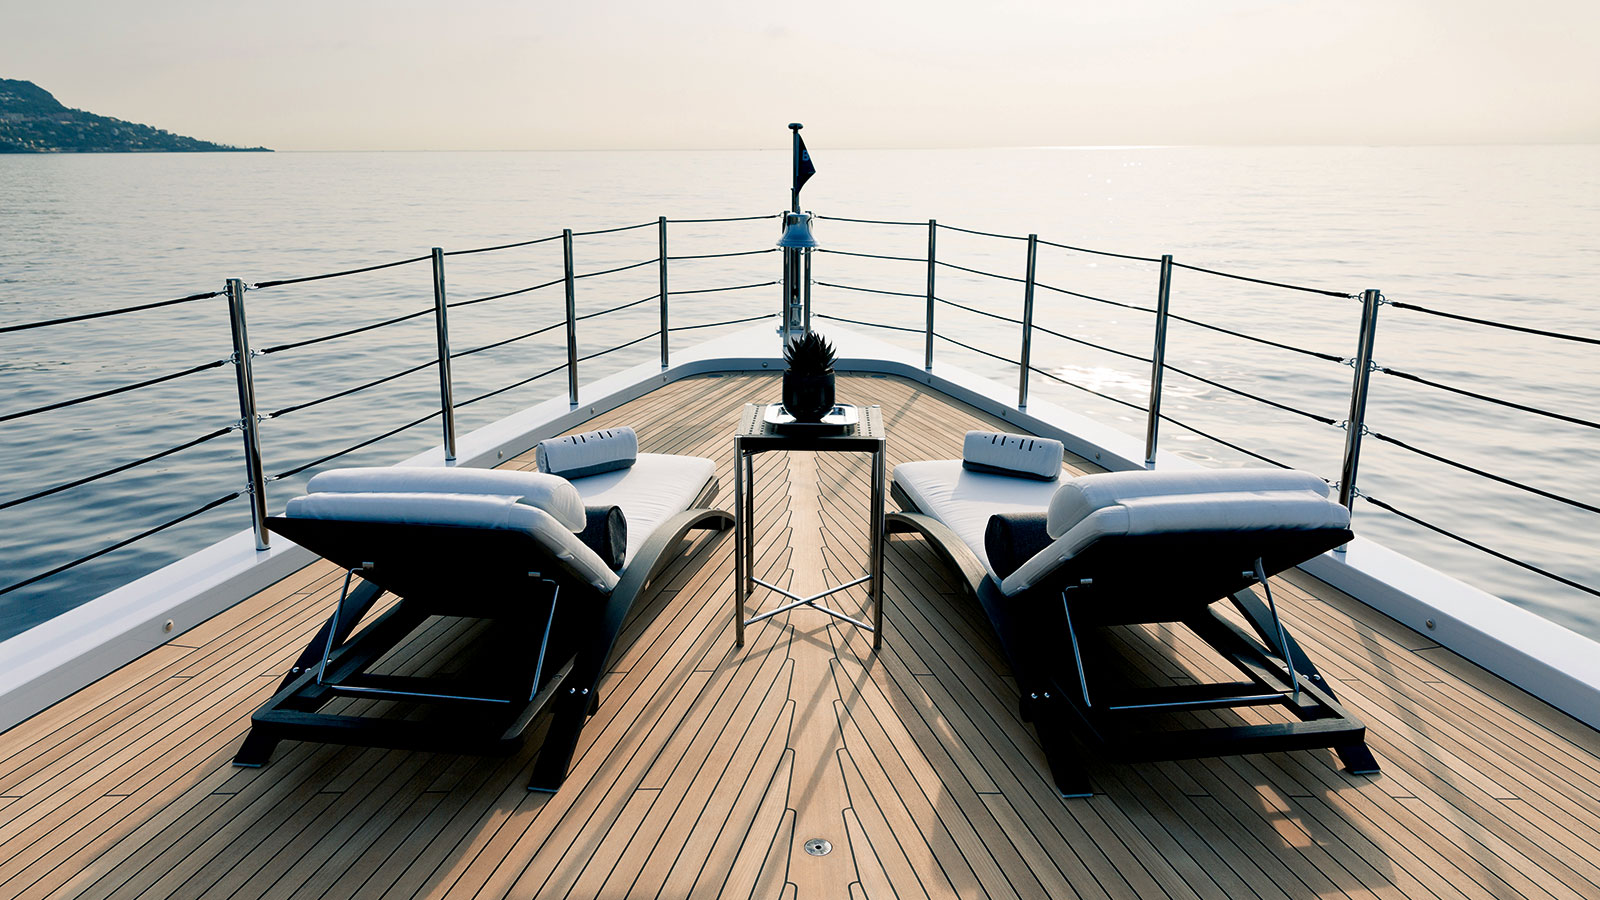 11.11 Foredeck seating